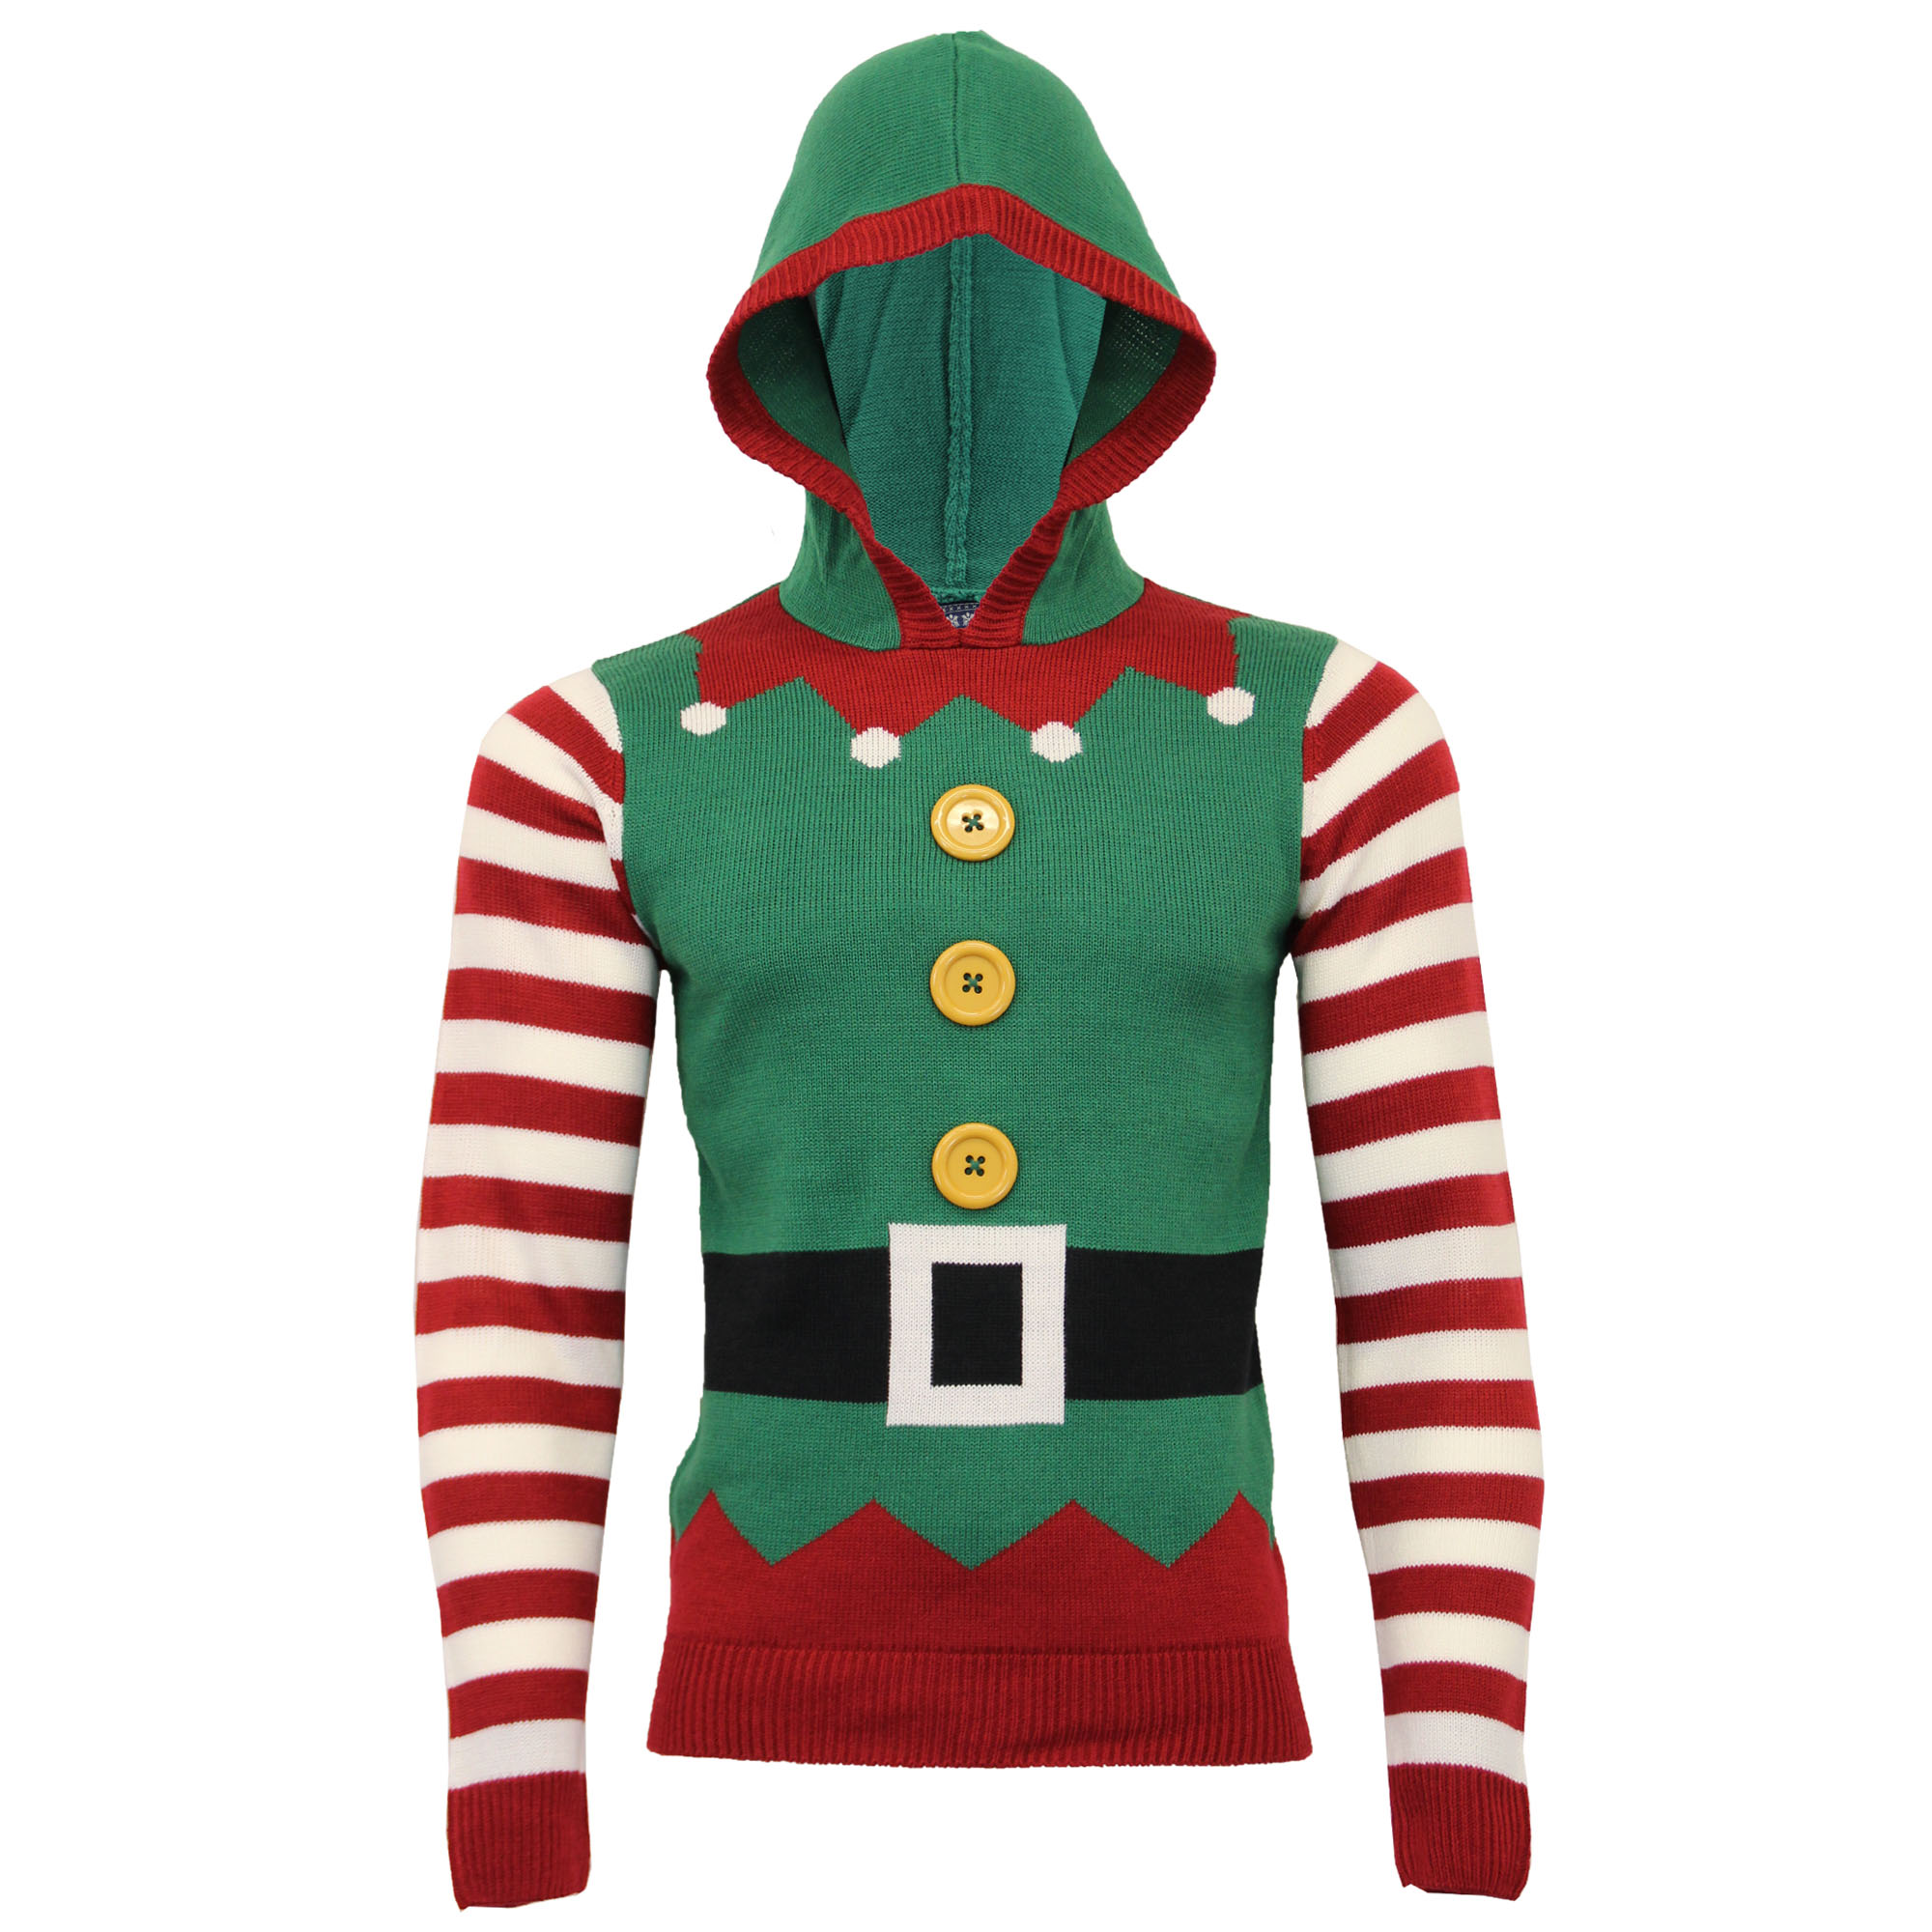 298c2e01b4ff Mens Xmas Christmas Jumper Seasons Greetings 3D Novelty Elf Print ...